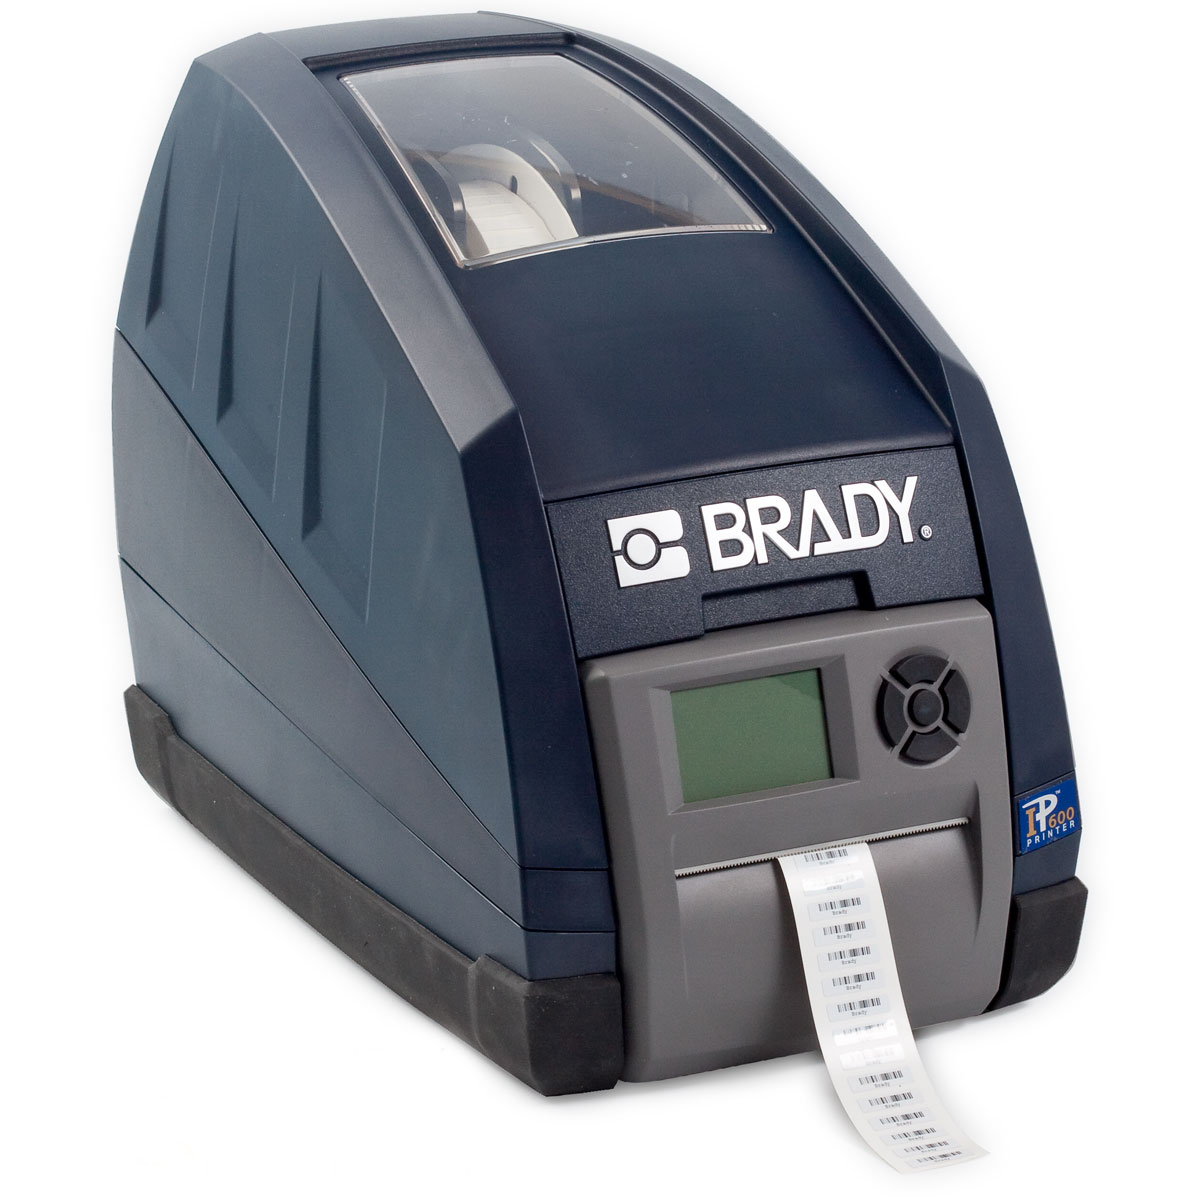 BRADY IP600 PRINTER WINDOWS DRIVER DOWNLOAD